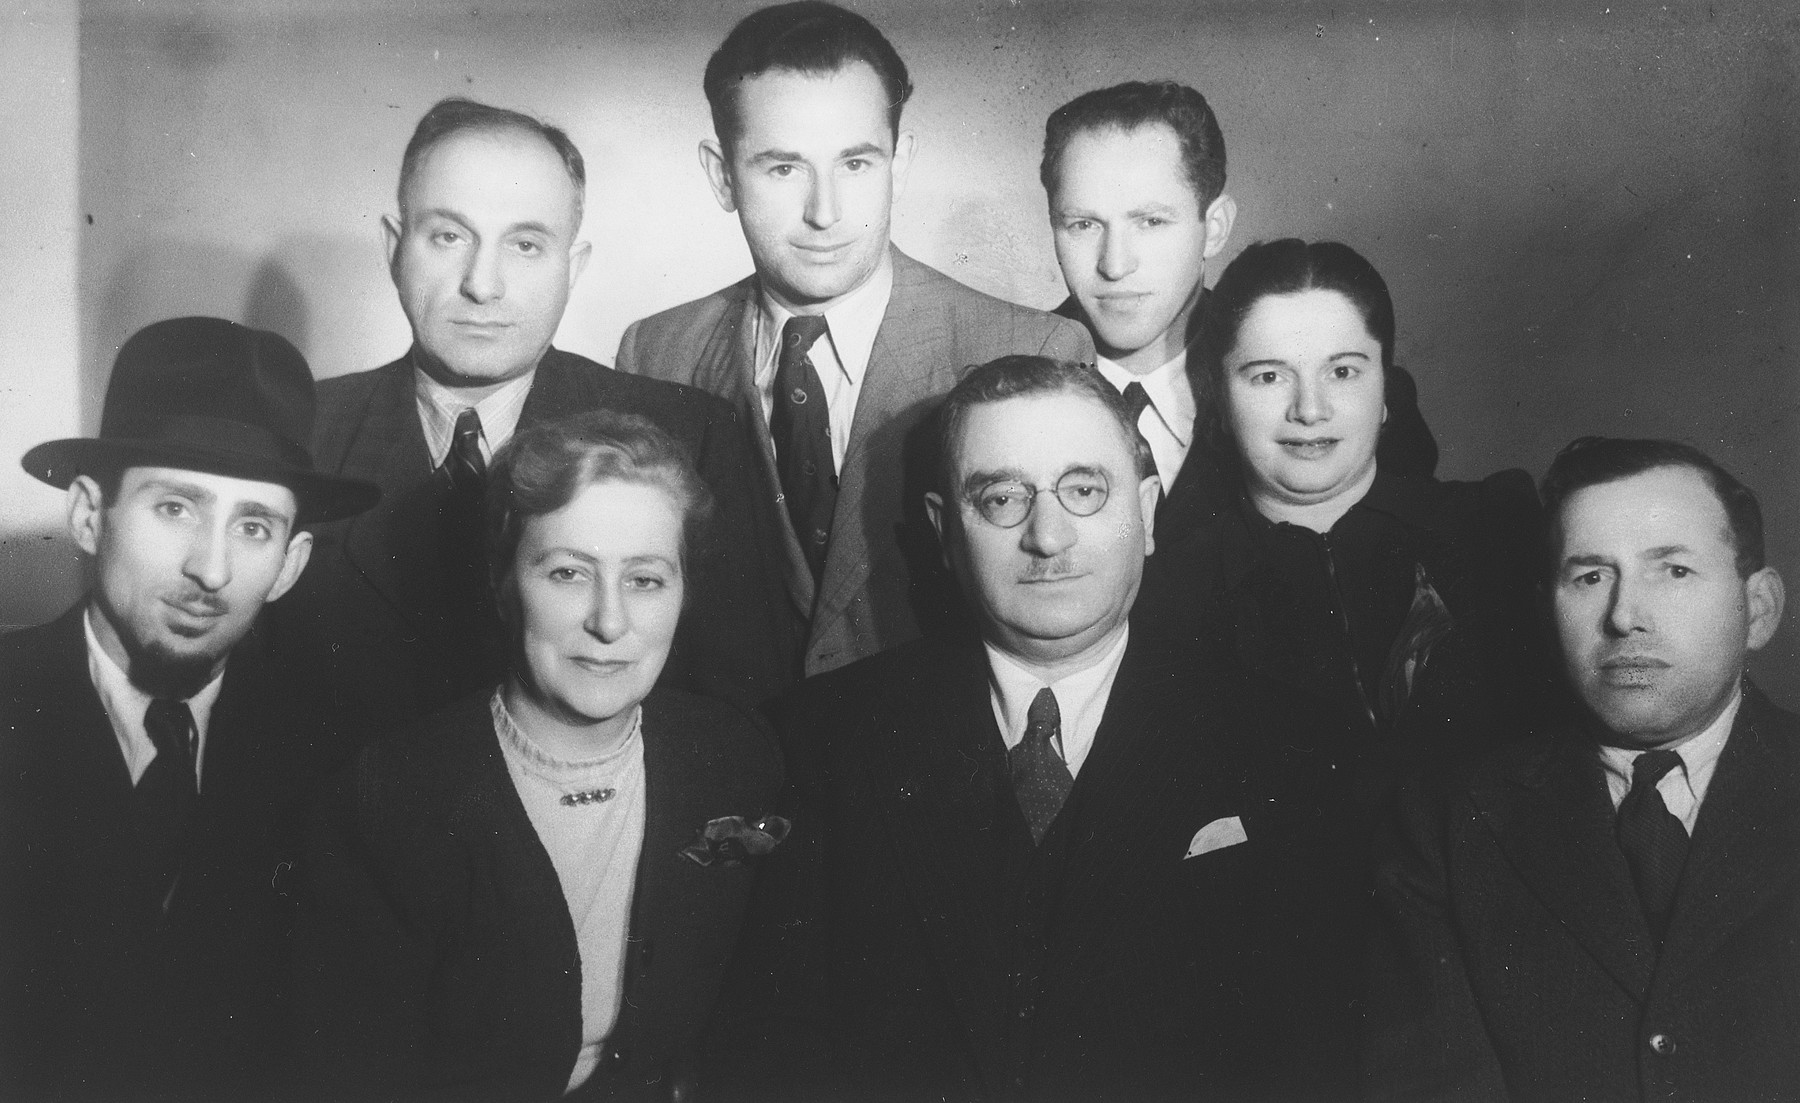 Group portrait of Lithuanian born Jewish displaced persons in Rome.  Pictured in the front row, second from the right is Dr. Elias Sedlis.